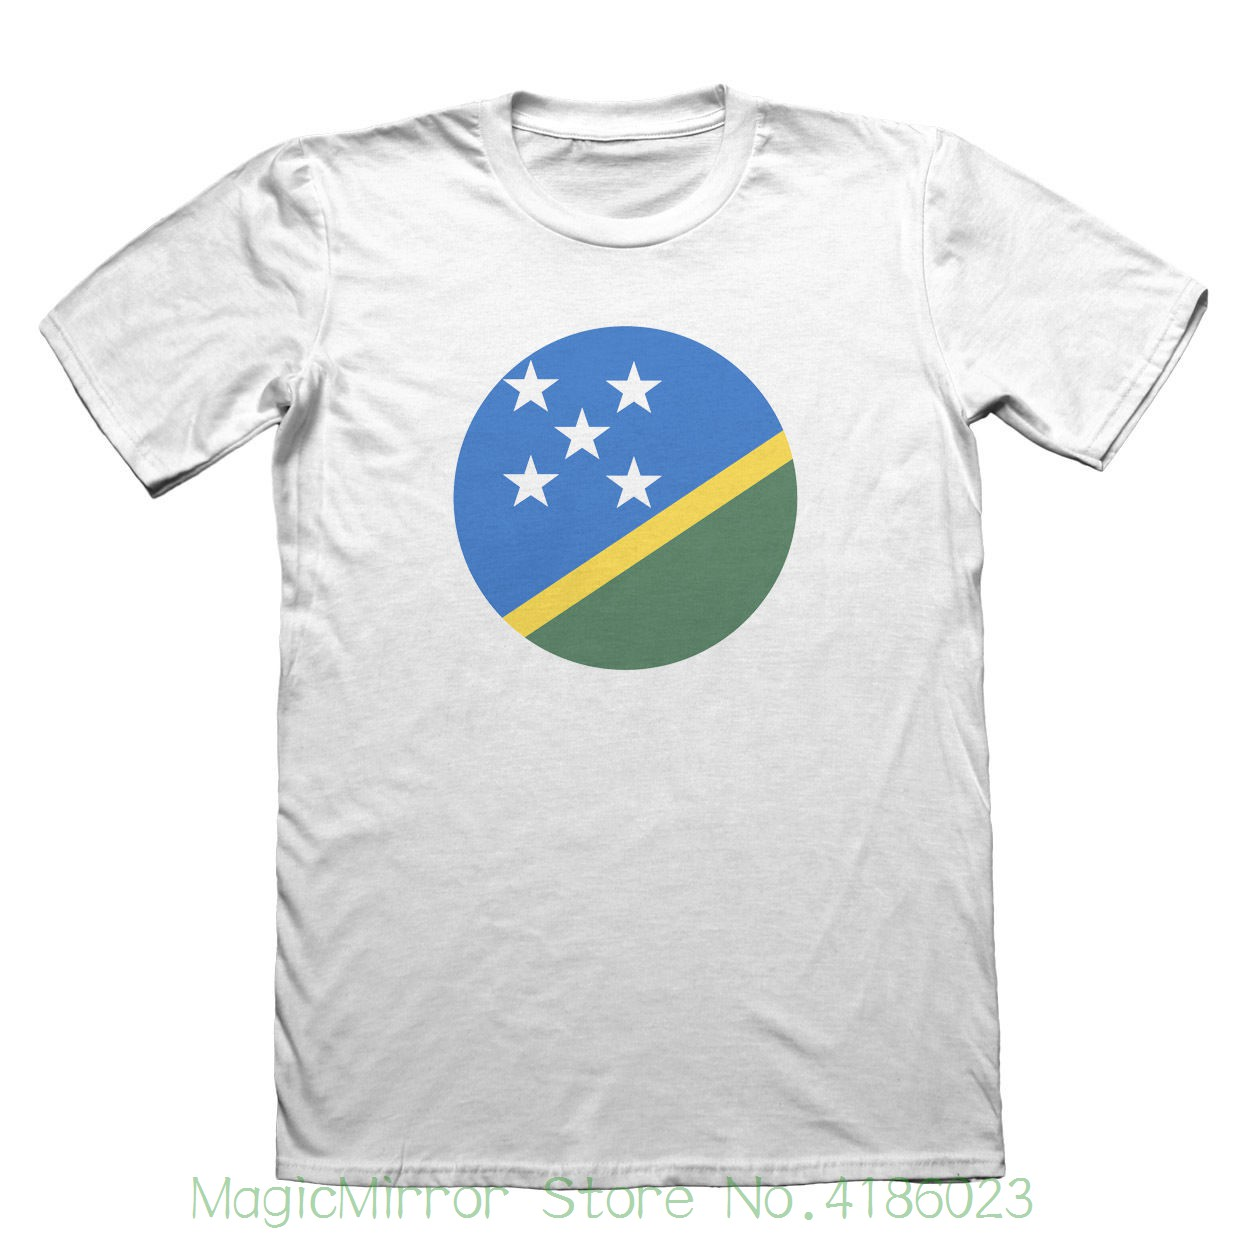 Solomon Islands Flag Design T-shirt - Mens Fathers Day Christmas #9158 Hot Selling 100 % Cotton Tee Shirts